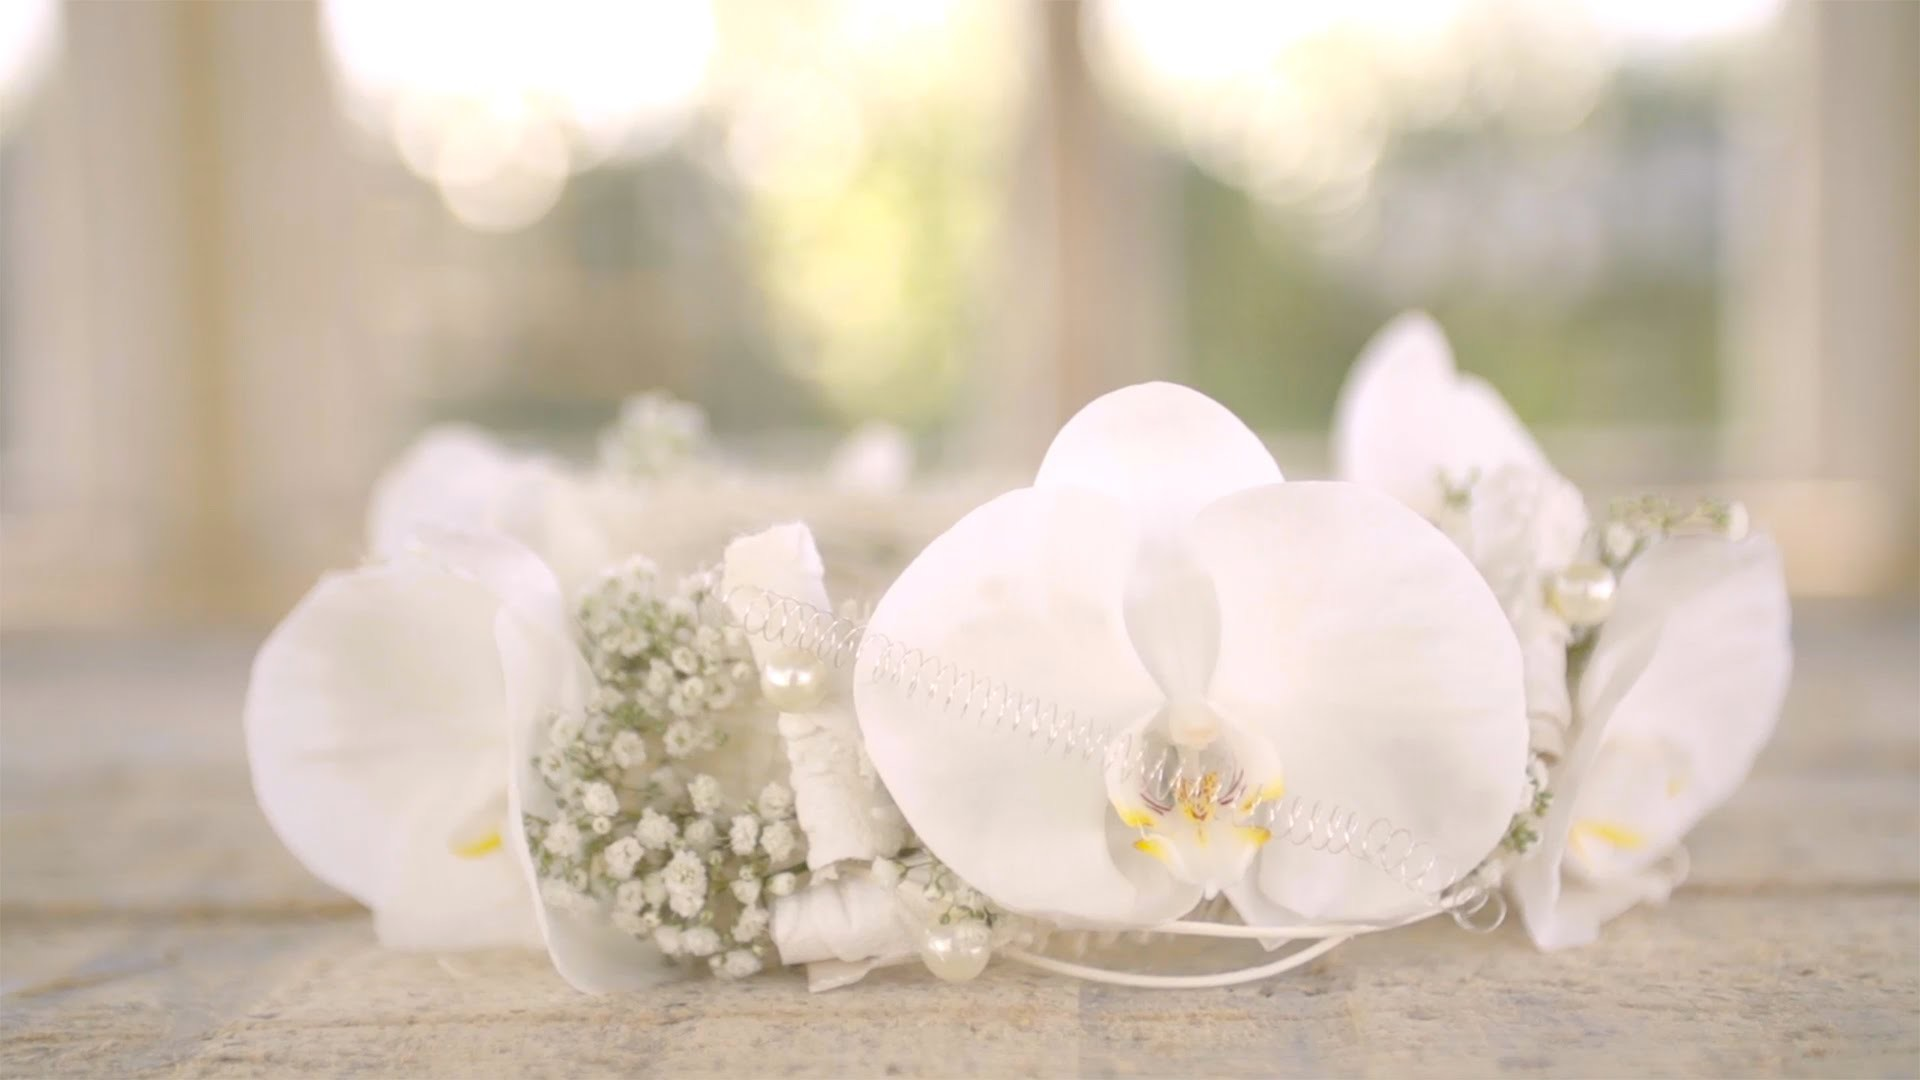 Classic Wedding Headpiece | Flower Factor How To | Powered by Ichtus Flowers